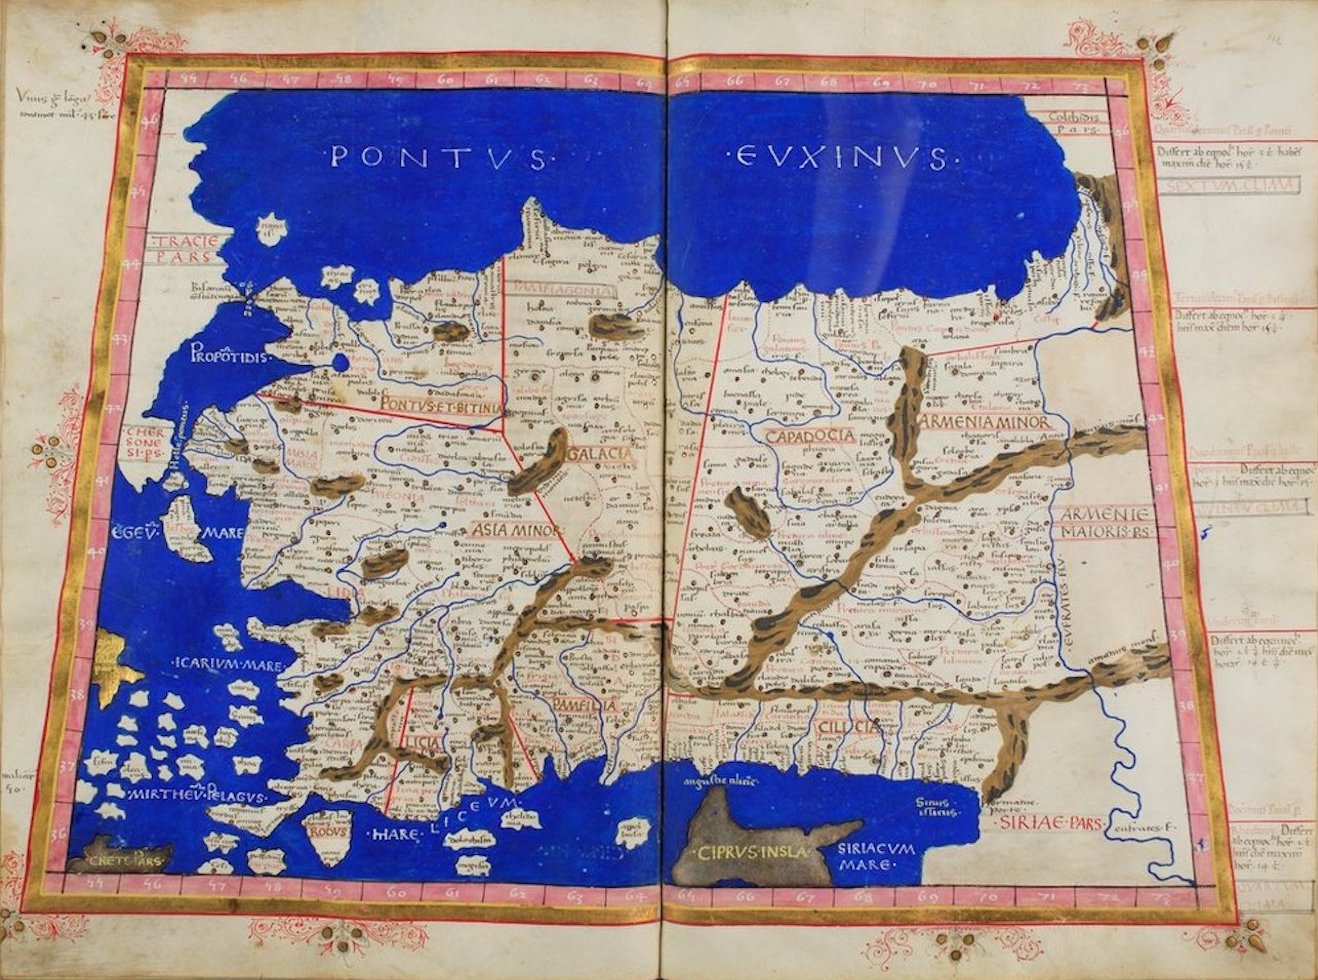 Ptolemy's Map of Asia - I